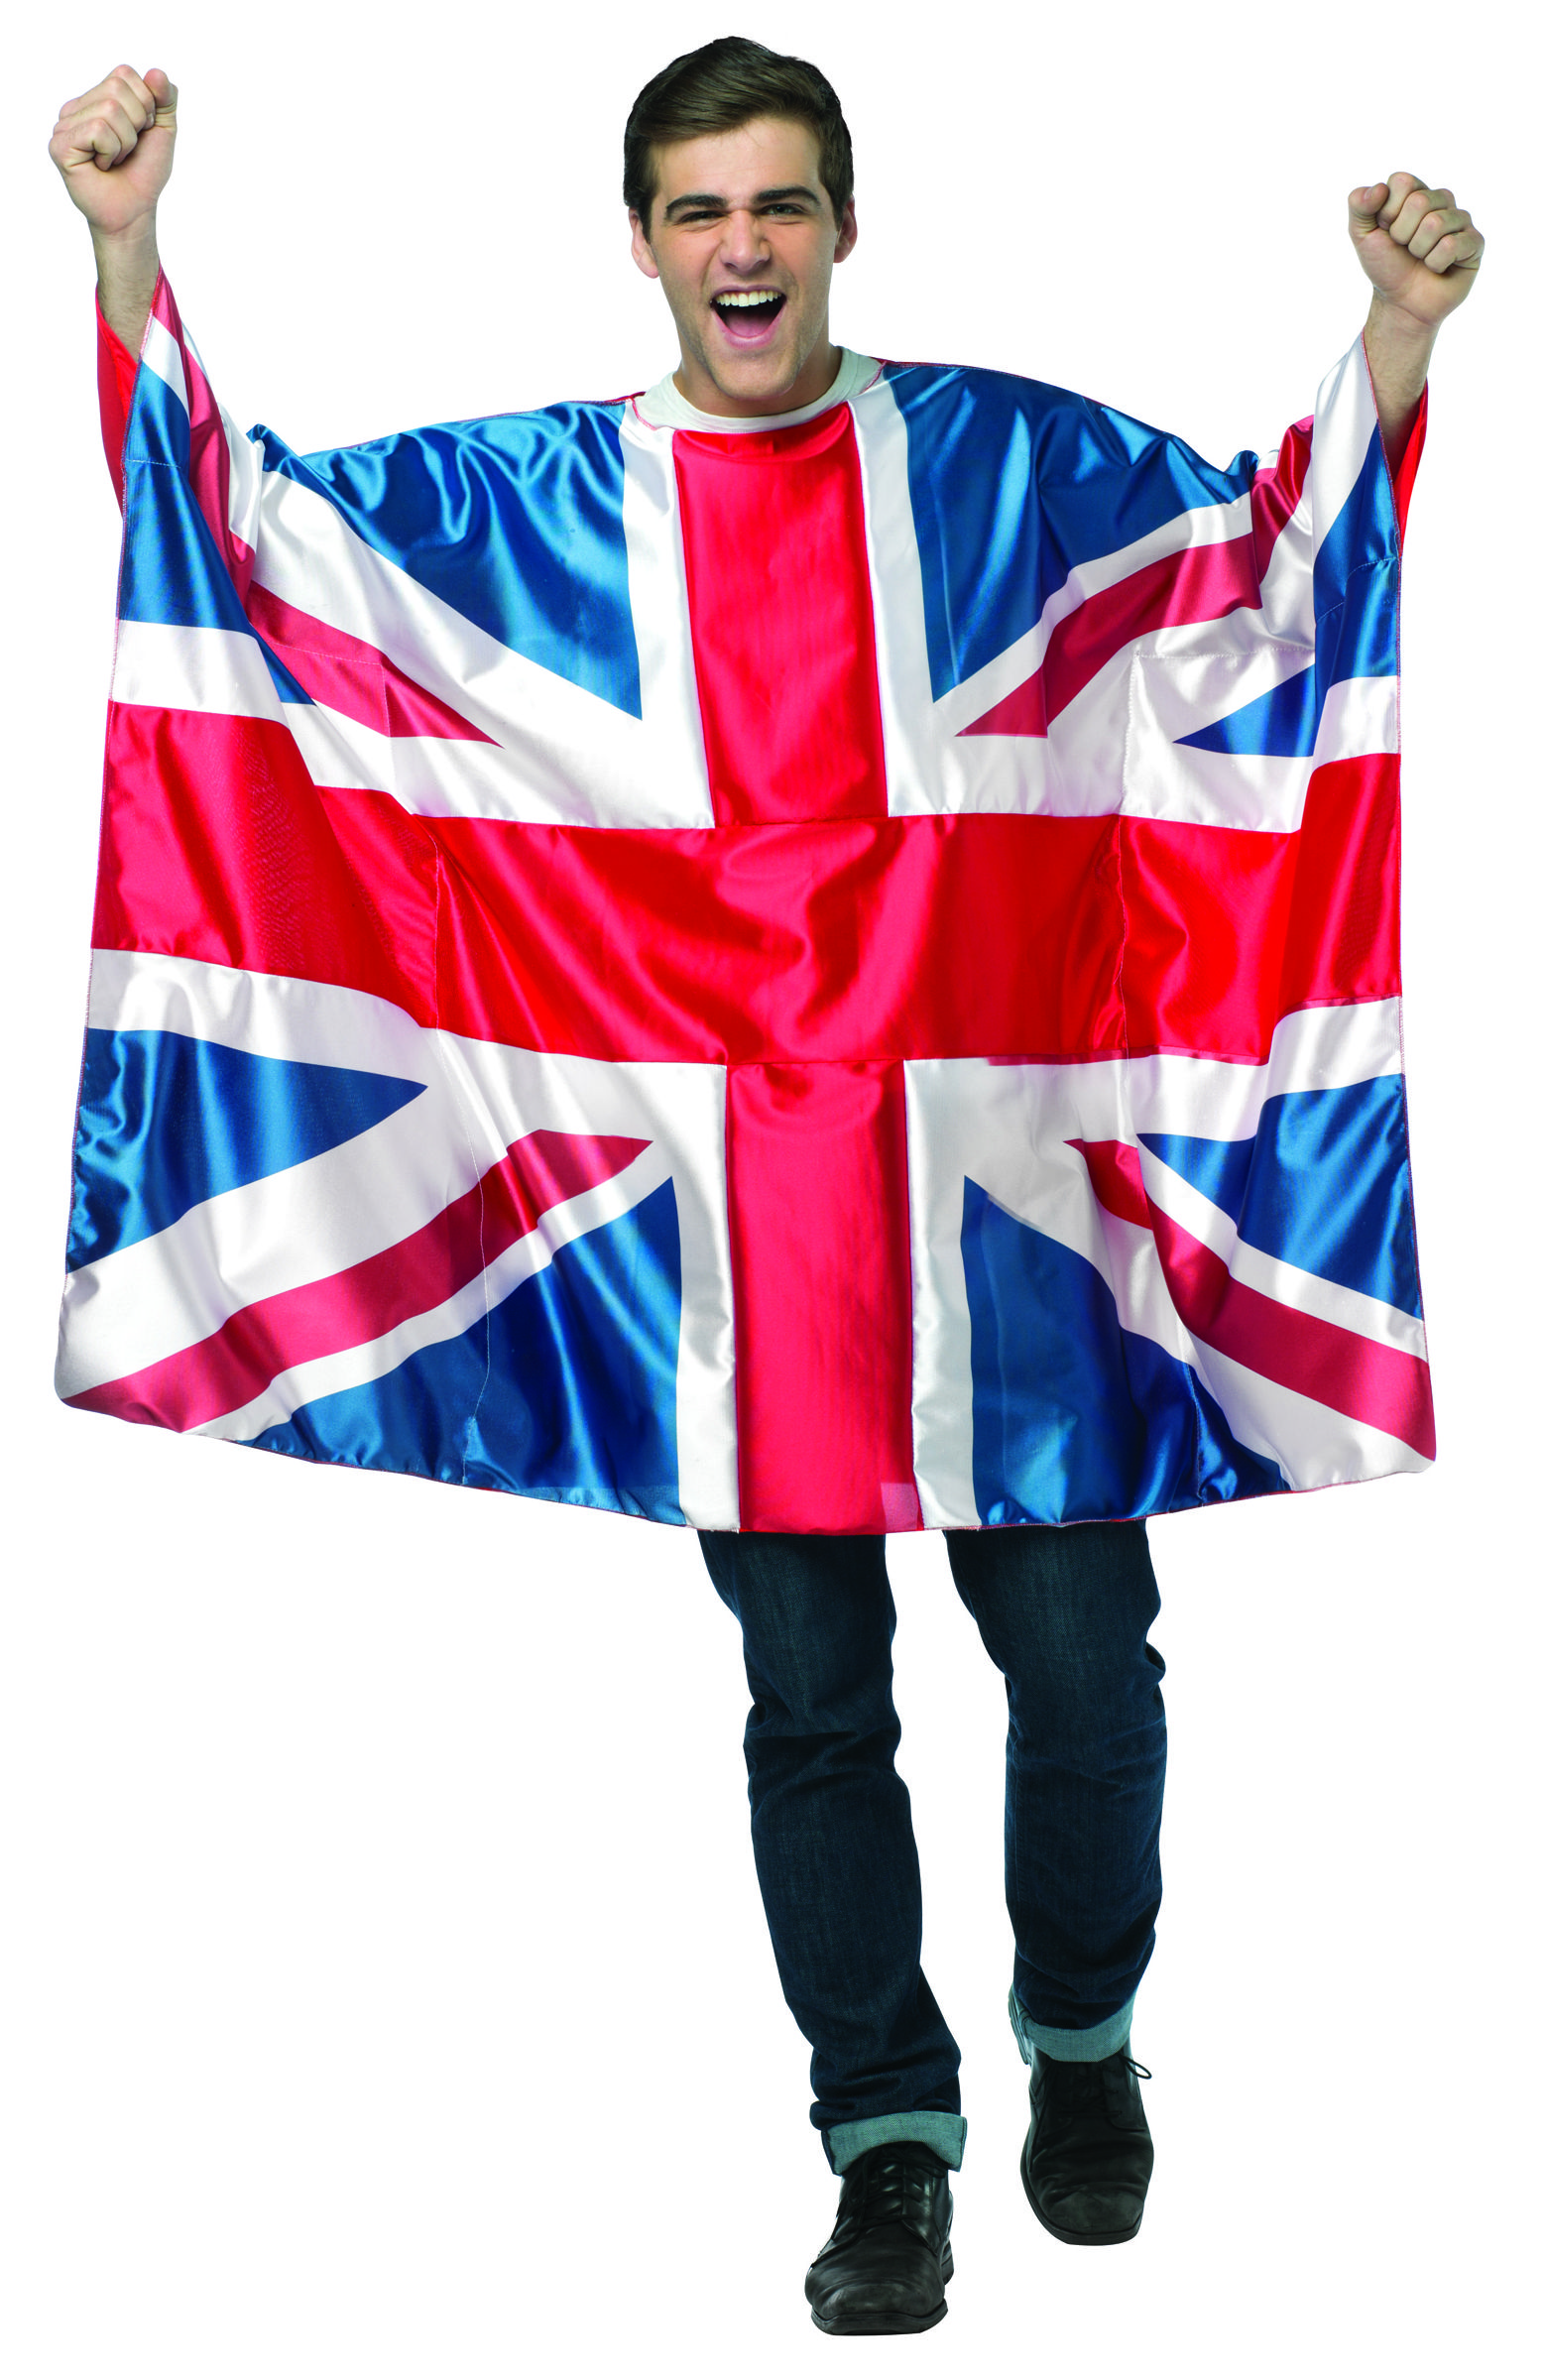 #1986 Flag Tunic- UK - Show your pride, support, and love of country in your very own Flag tunic.  Generously cut to fit most, cheer on the National team, wear in parades, or even get spotted at the next World event!  Polyester.  One Size. #UKFlag #UK #flag #festival #parade #halloween #funfestival